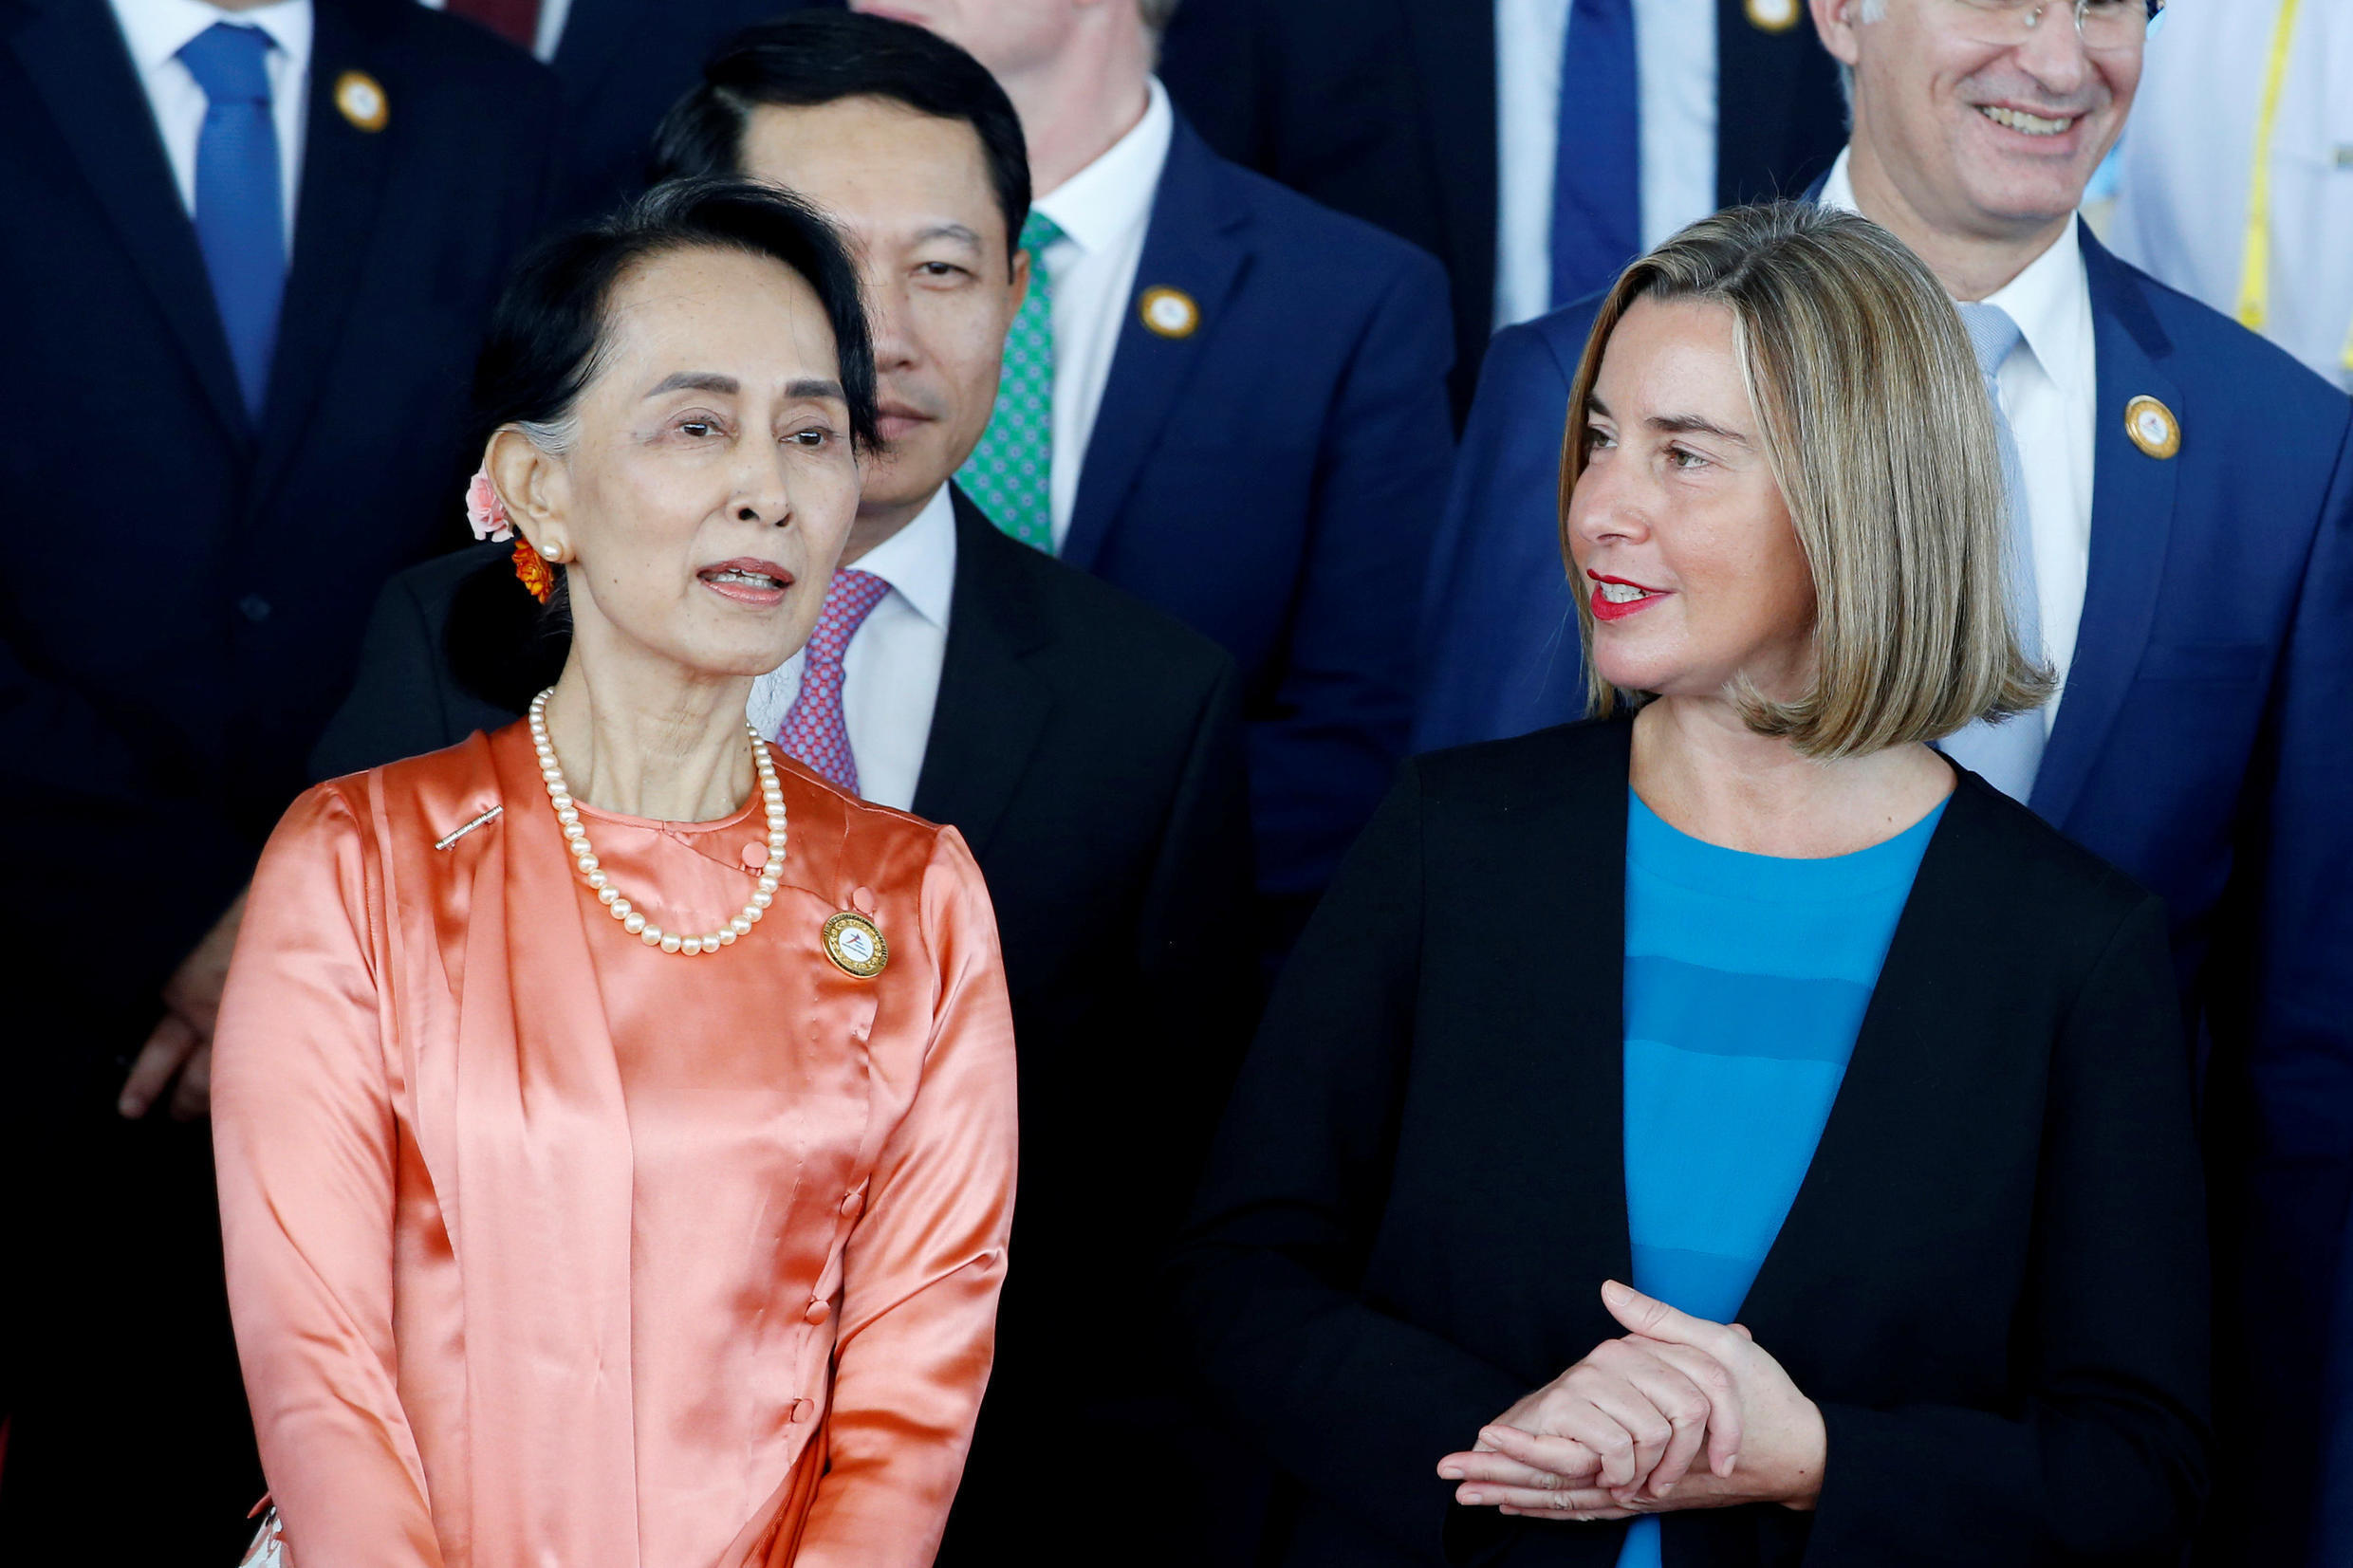 Myanmar State Counselor Aung San Suu Kyi talks with High Representative of European Union Federica Mogherini during the 13th Asia-Europe Meeting of foreign ministers in Naypyitaw.